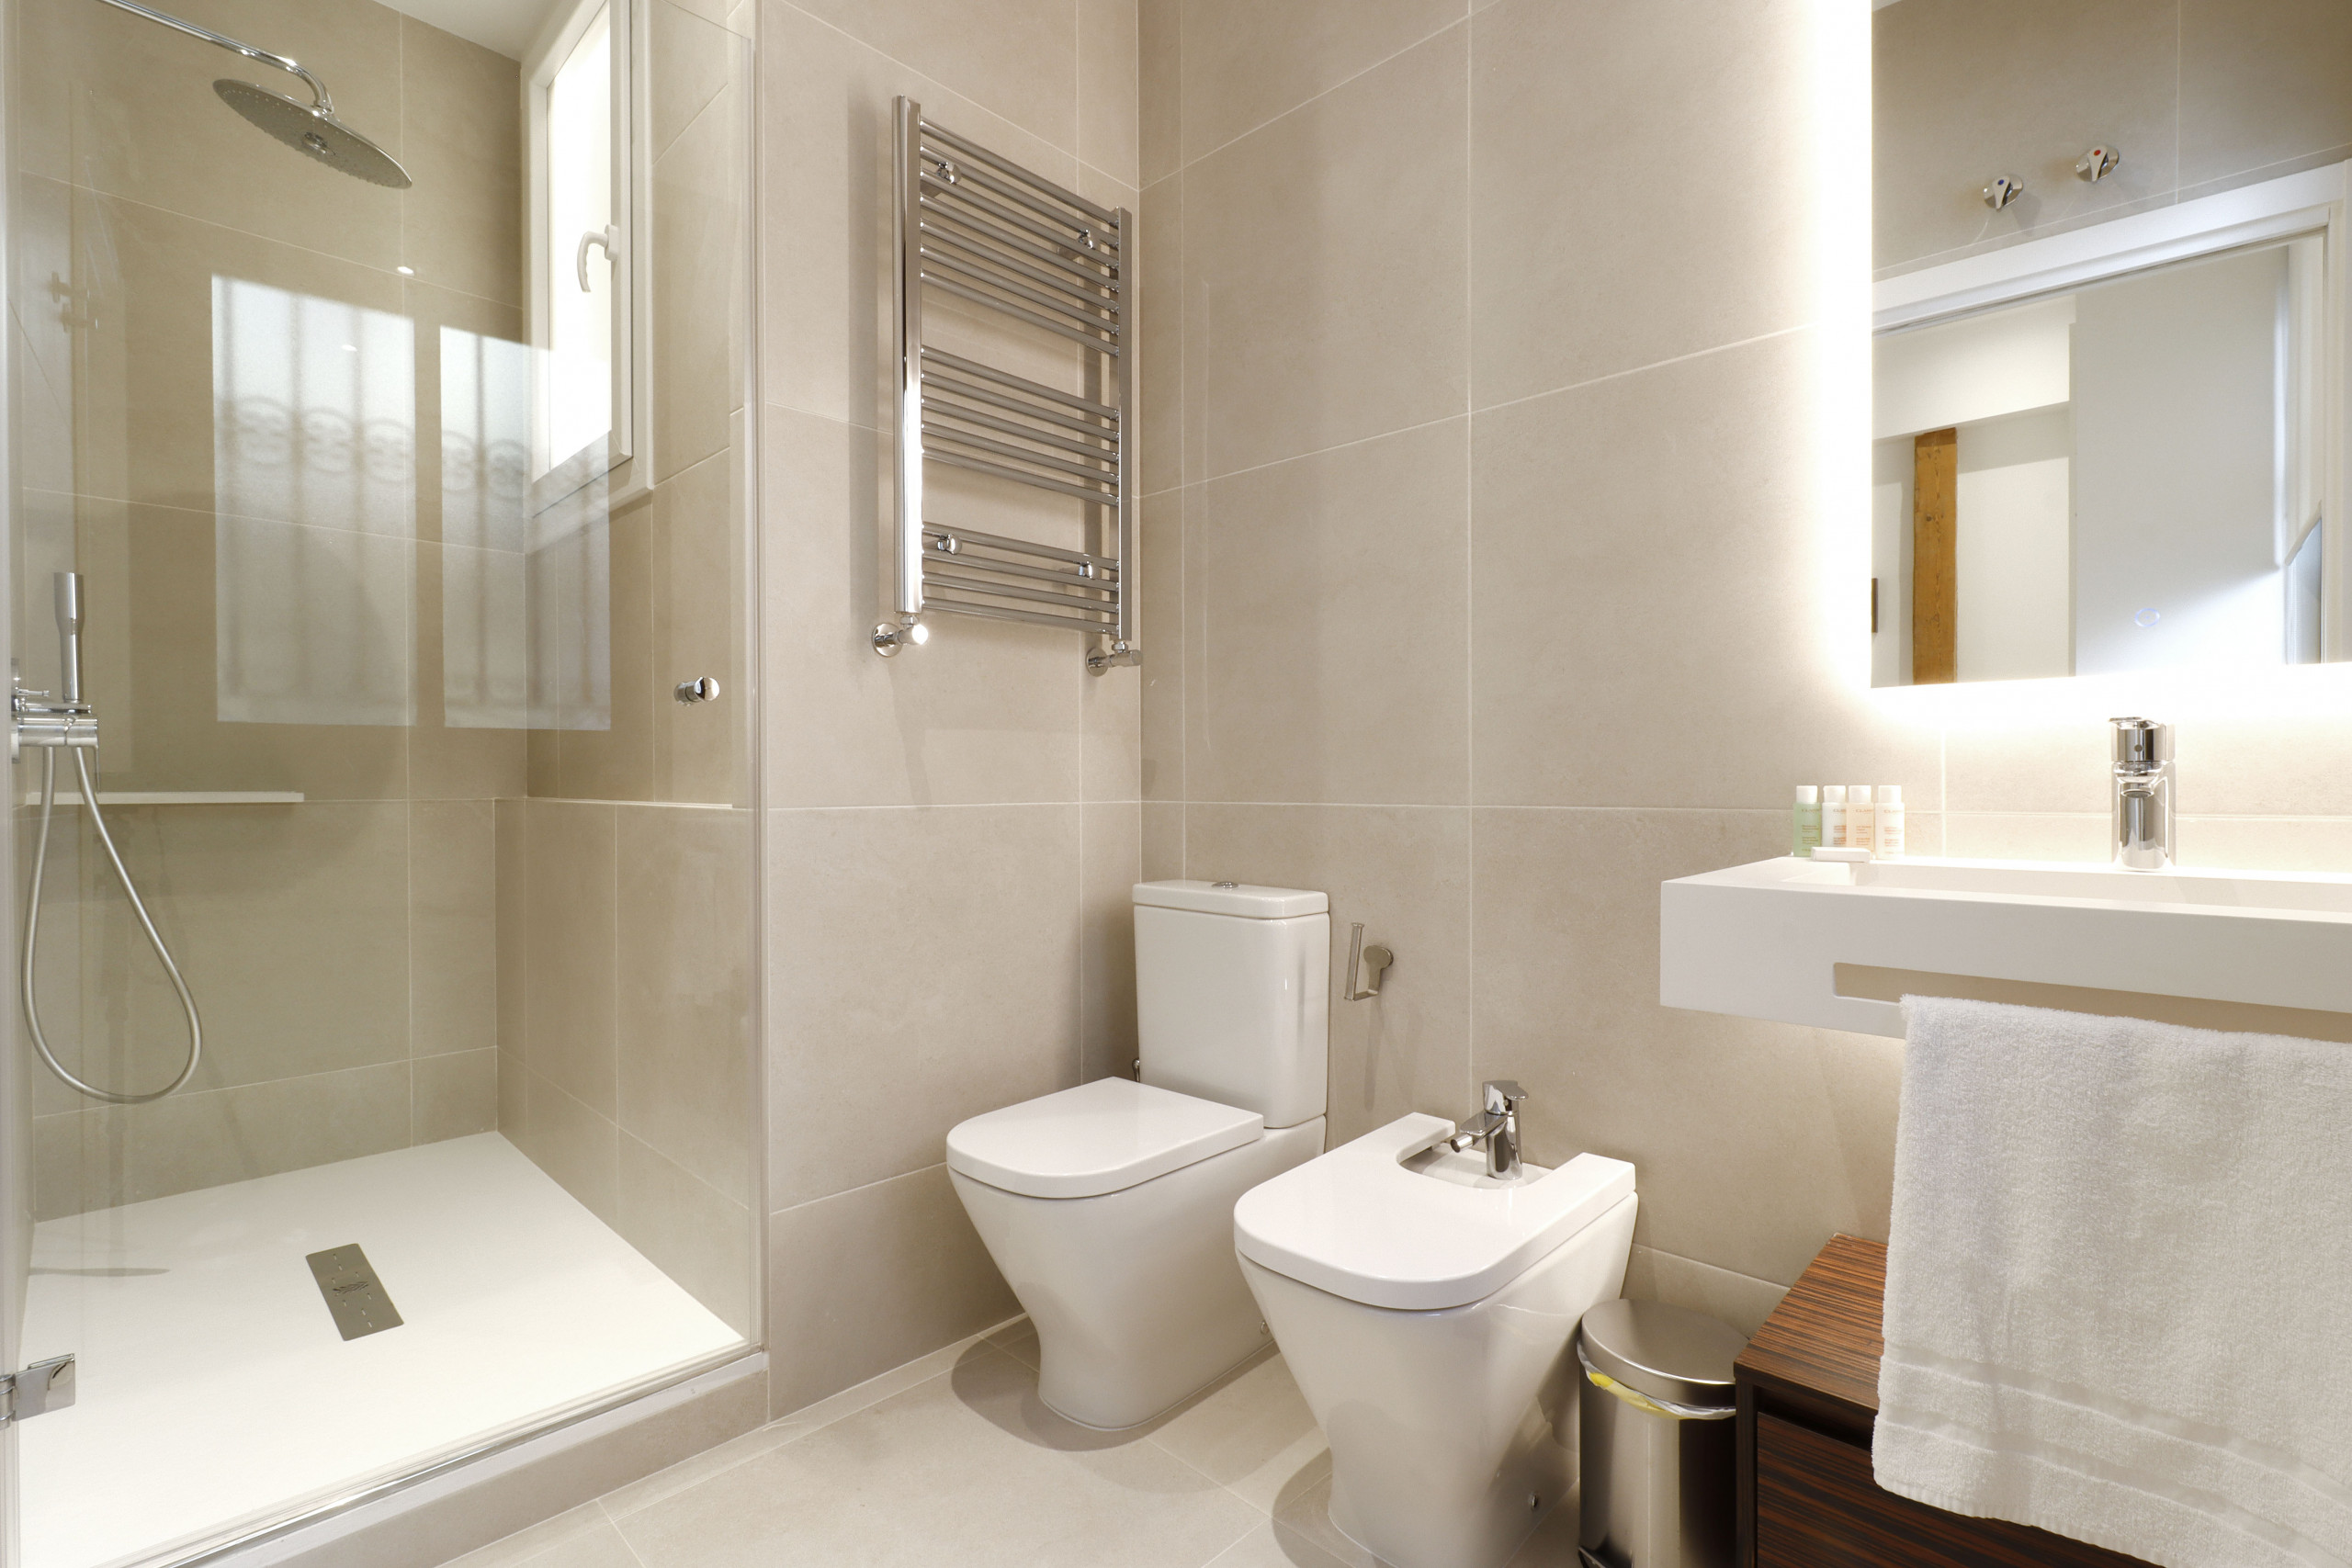 Baño ensuite - Reina Sofía Boutique II by Madflats Collection